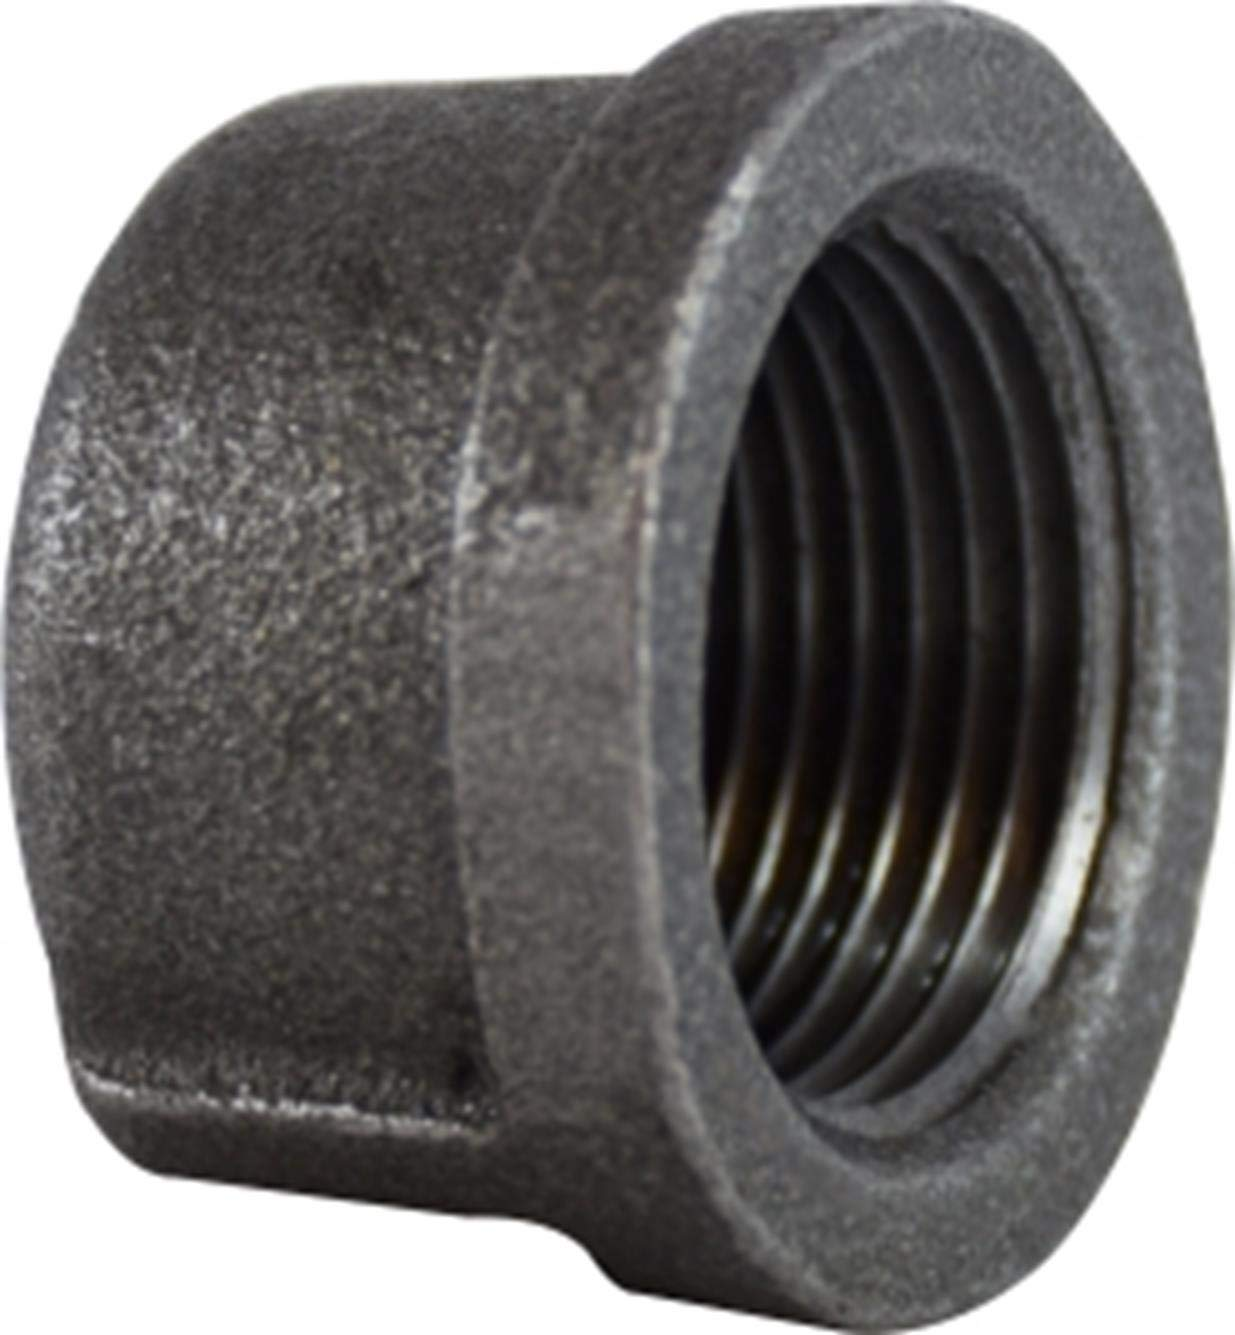 Adaptall B14C-08 Series B14C Malleable Free Shipping Cheap Bargain Gift Solid Seattle Mall Iron Cap BS Female